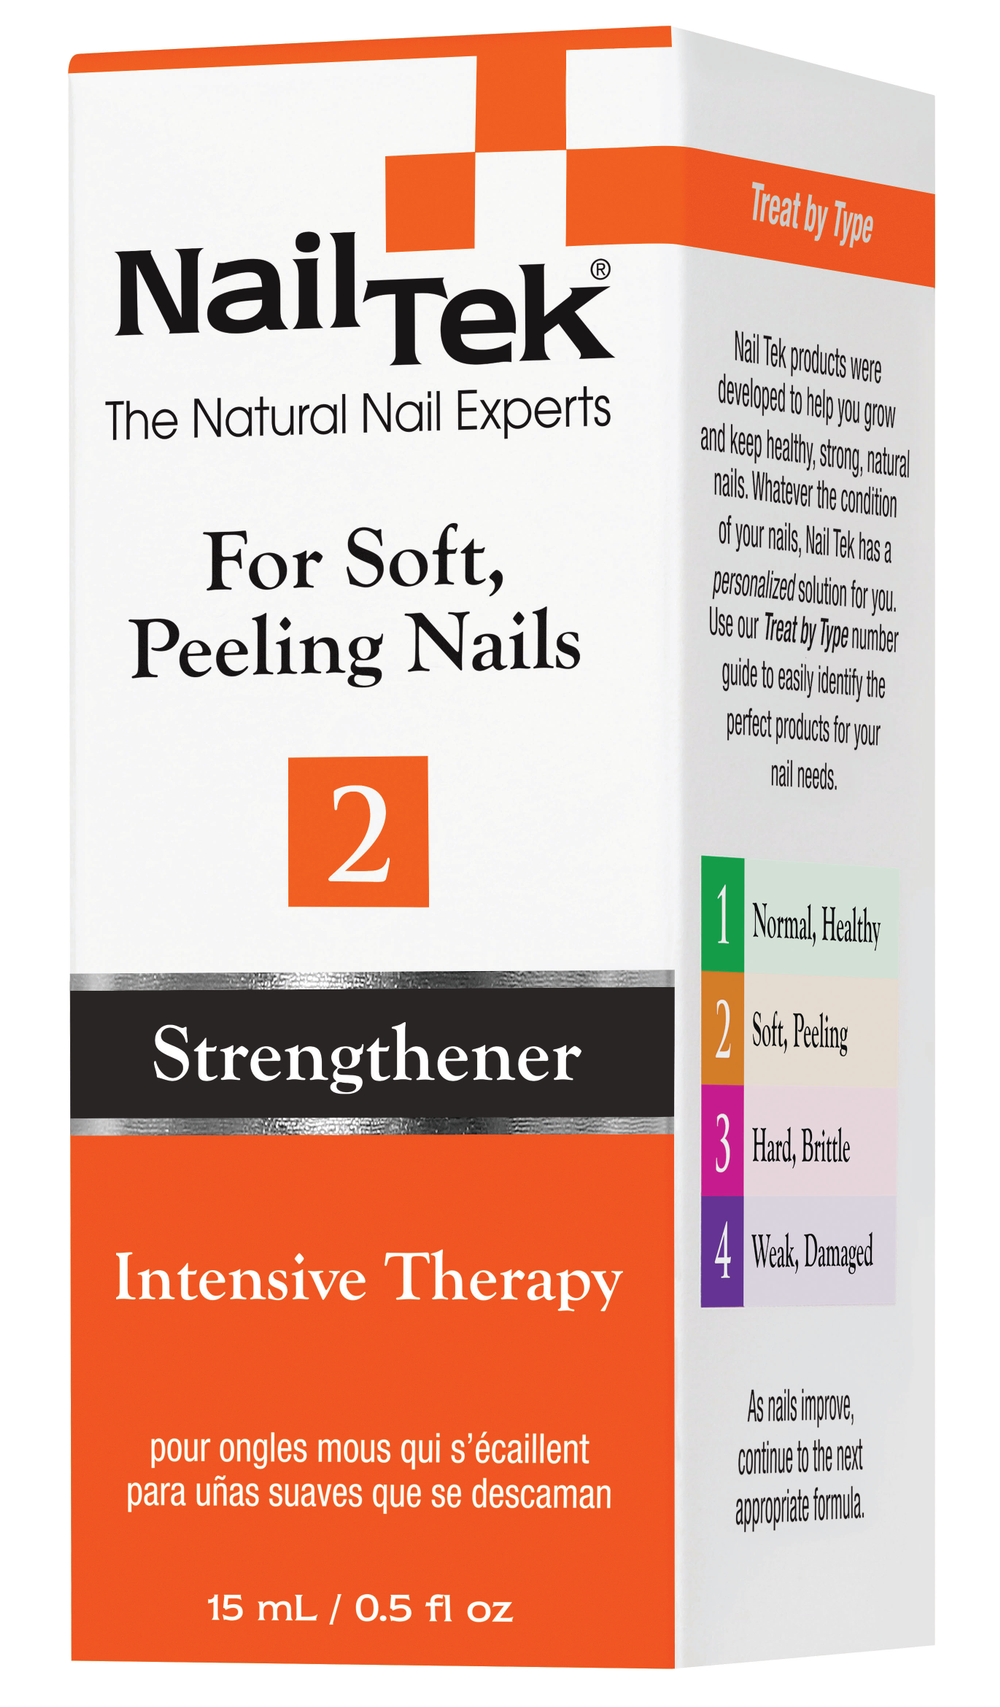 """<p>Nail TekIntensive Therapy 2 treats soft, peeling nails. This unique protein formulation seals the layers of the nail together, healing weak, thin, soft, or peeling nails. With each application, Intensive Therapy 2 reinforces and thickens nails while protecting strength and flexibility.<br /><a href=""""http://www.nailtek.com"""">www.nailtek.com</a></p>"""